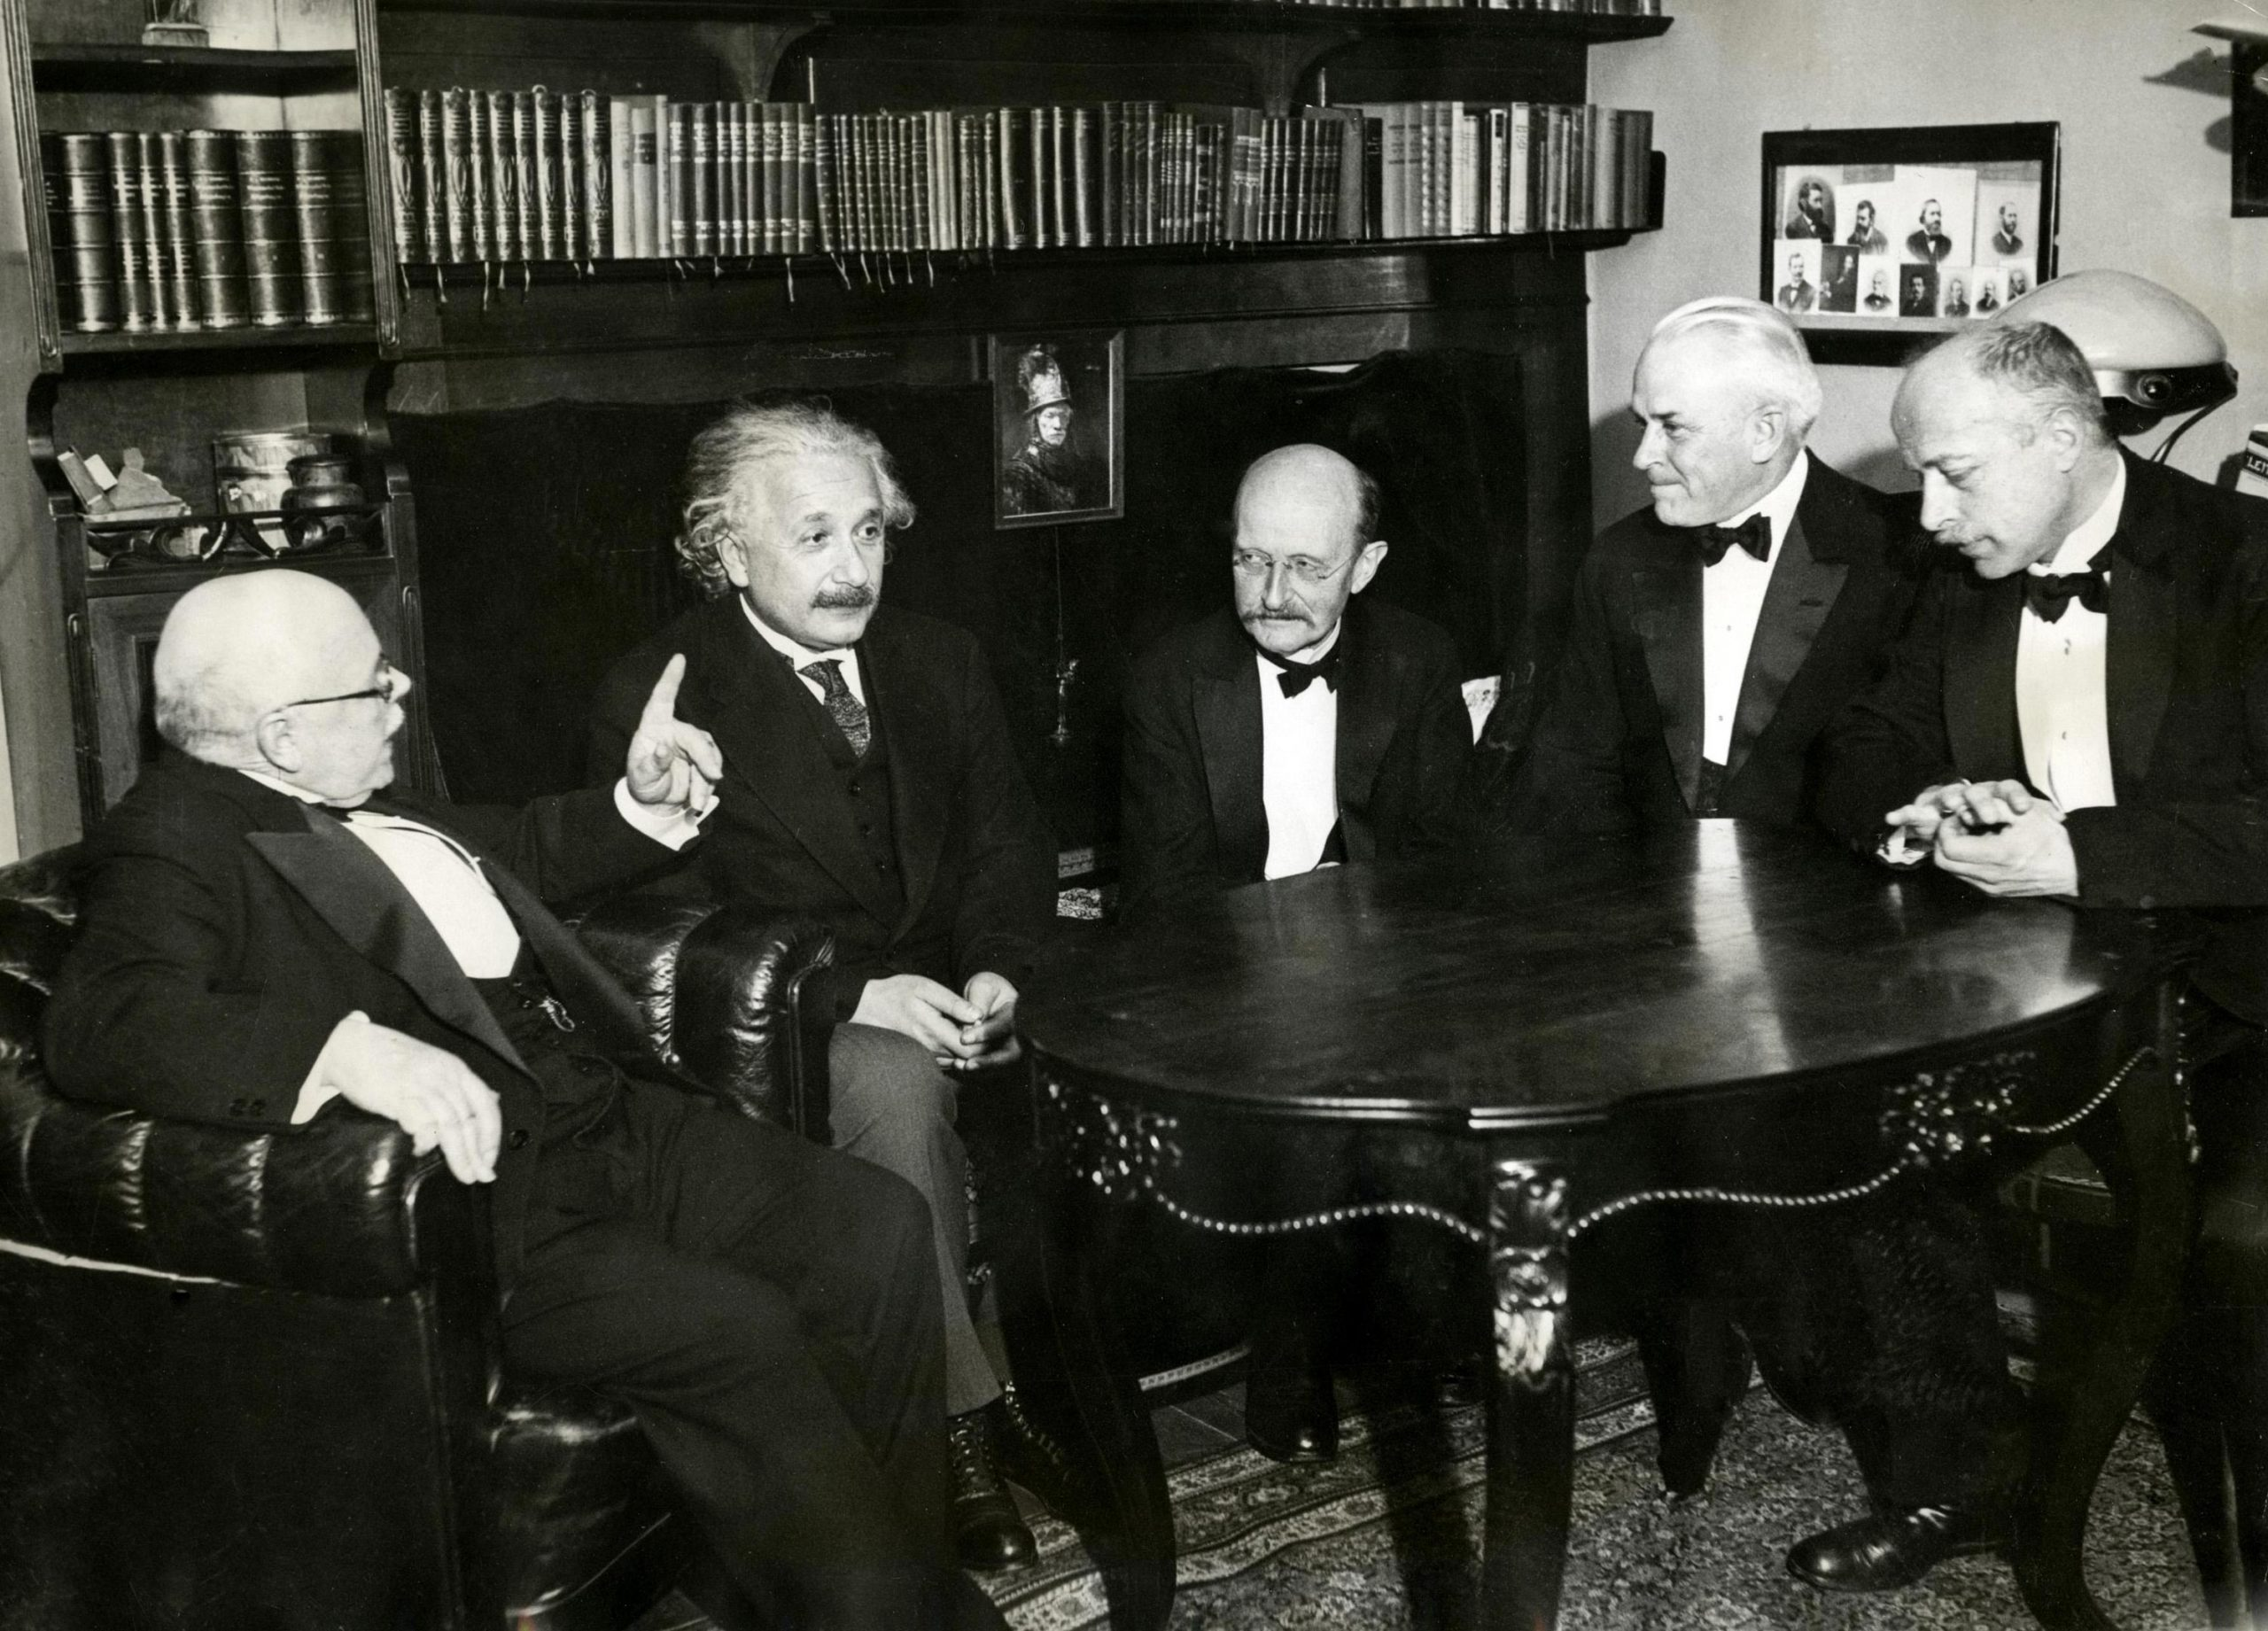 Max Planck and the Birth of Quantum Mechanics